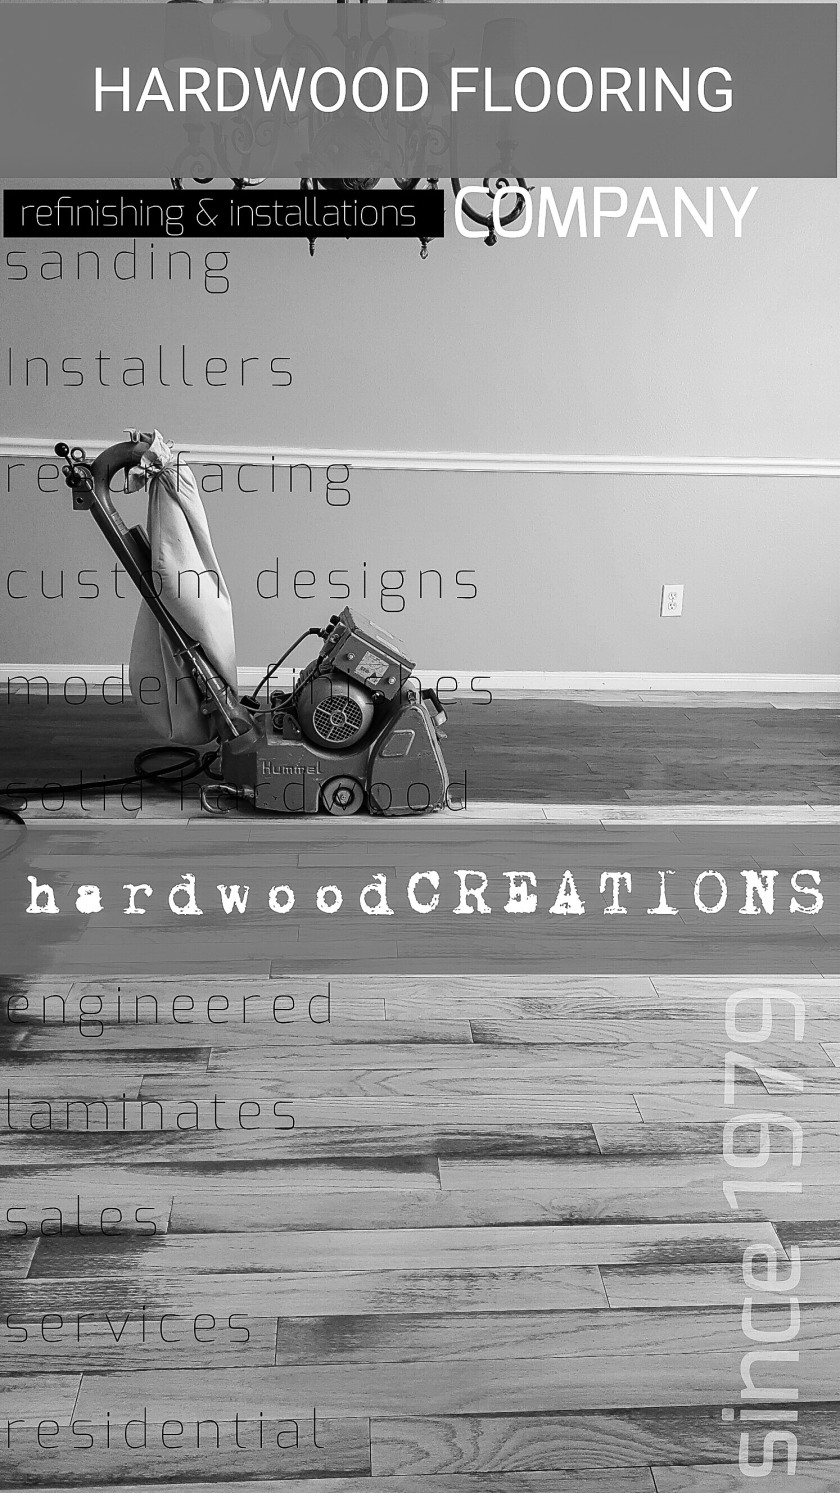 HARDWOOD FLOOR COMPANY HOUSTON